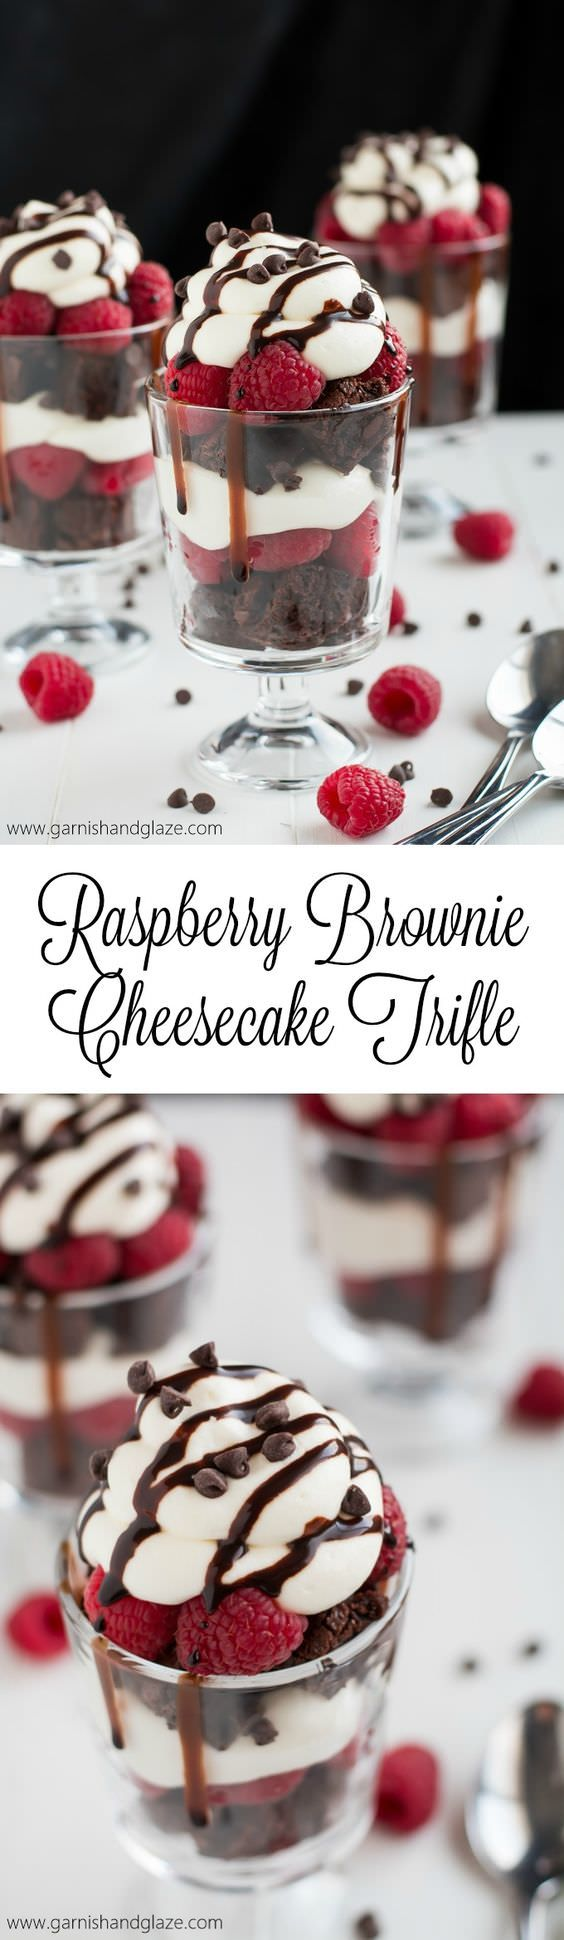 These Raspberry Brownie Cheesecake Trifles taste like heaven. It's like the delicious things in one dessert!– brownies, cheesecake, and raspberries!